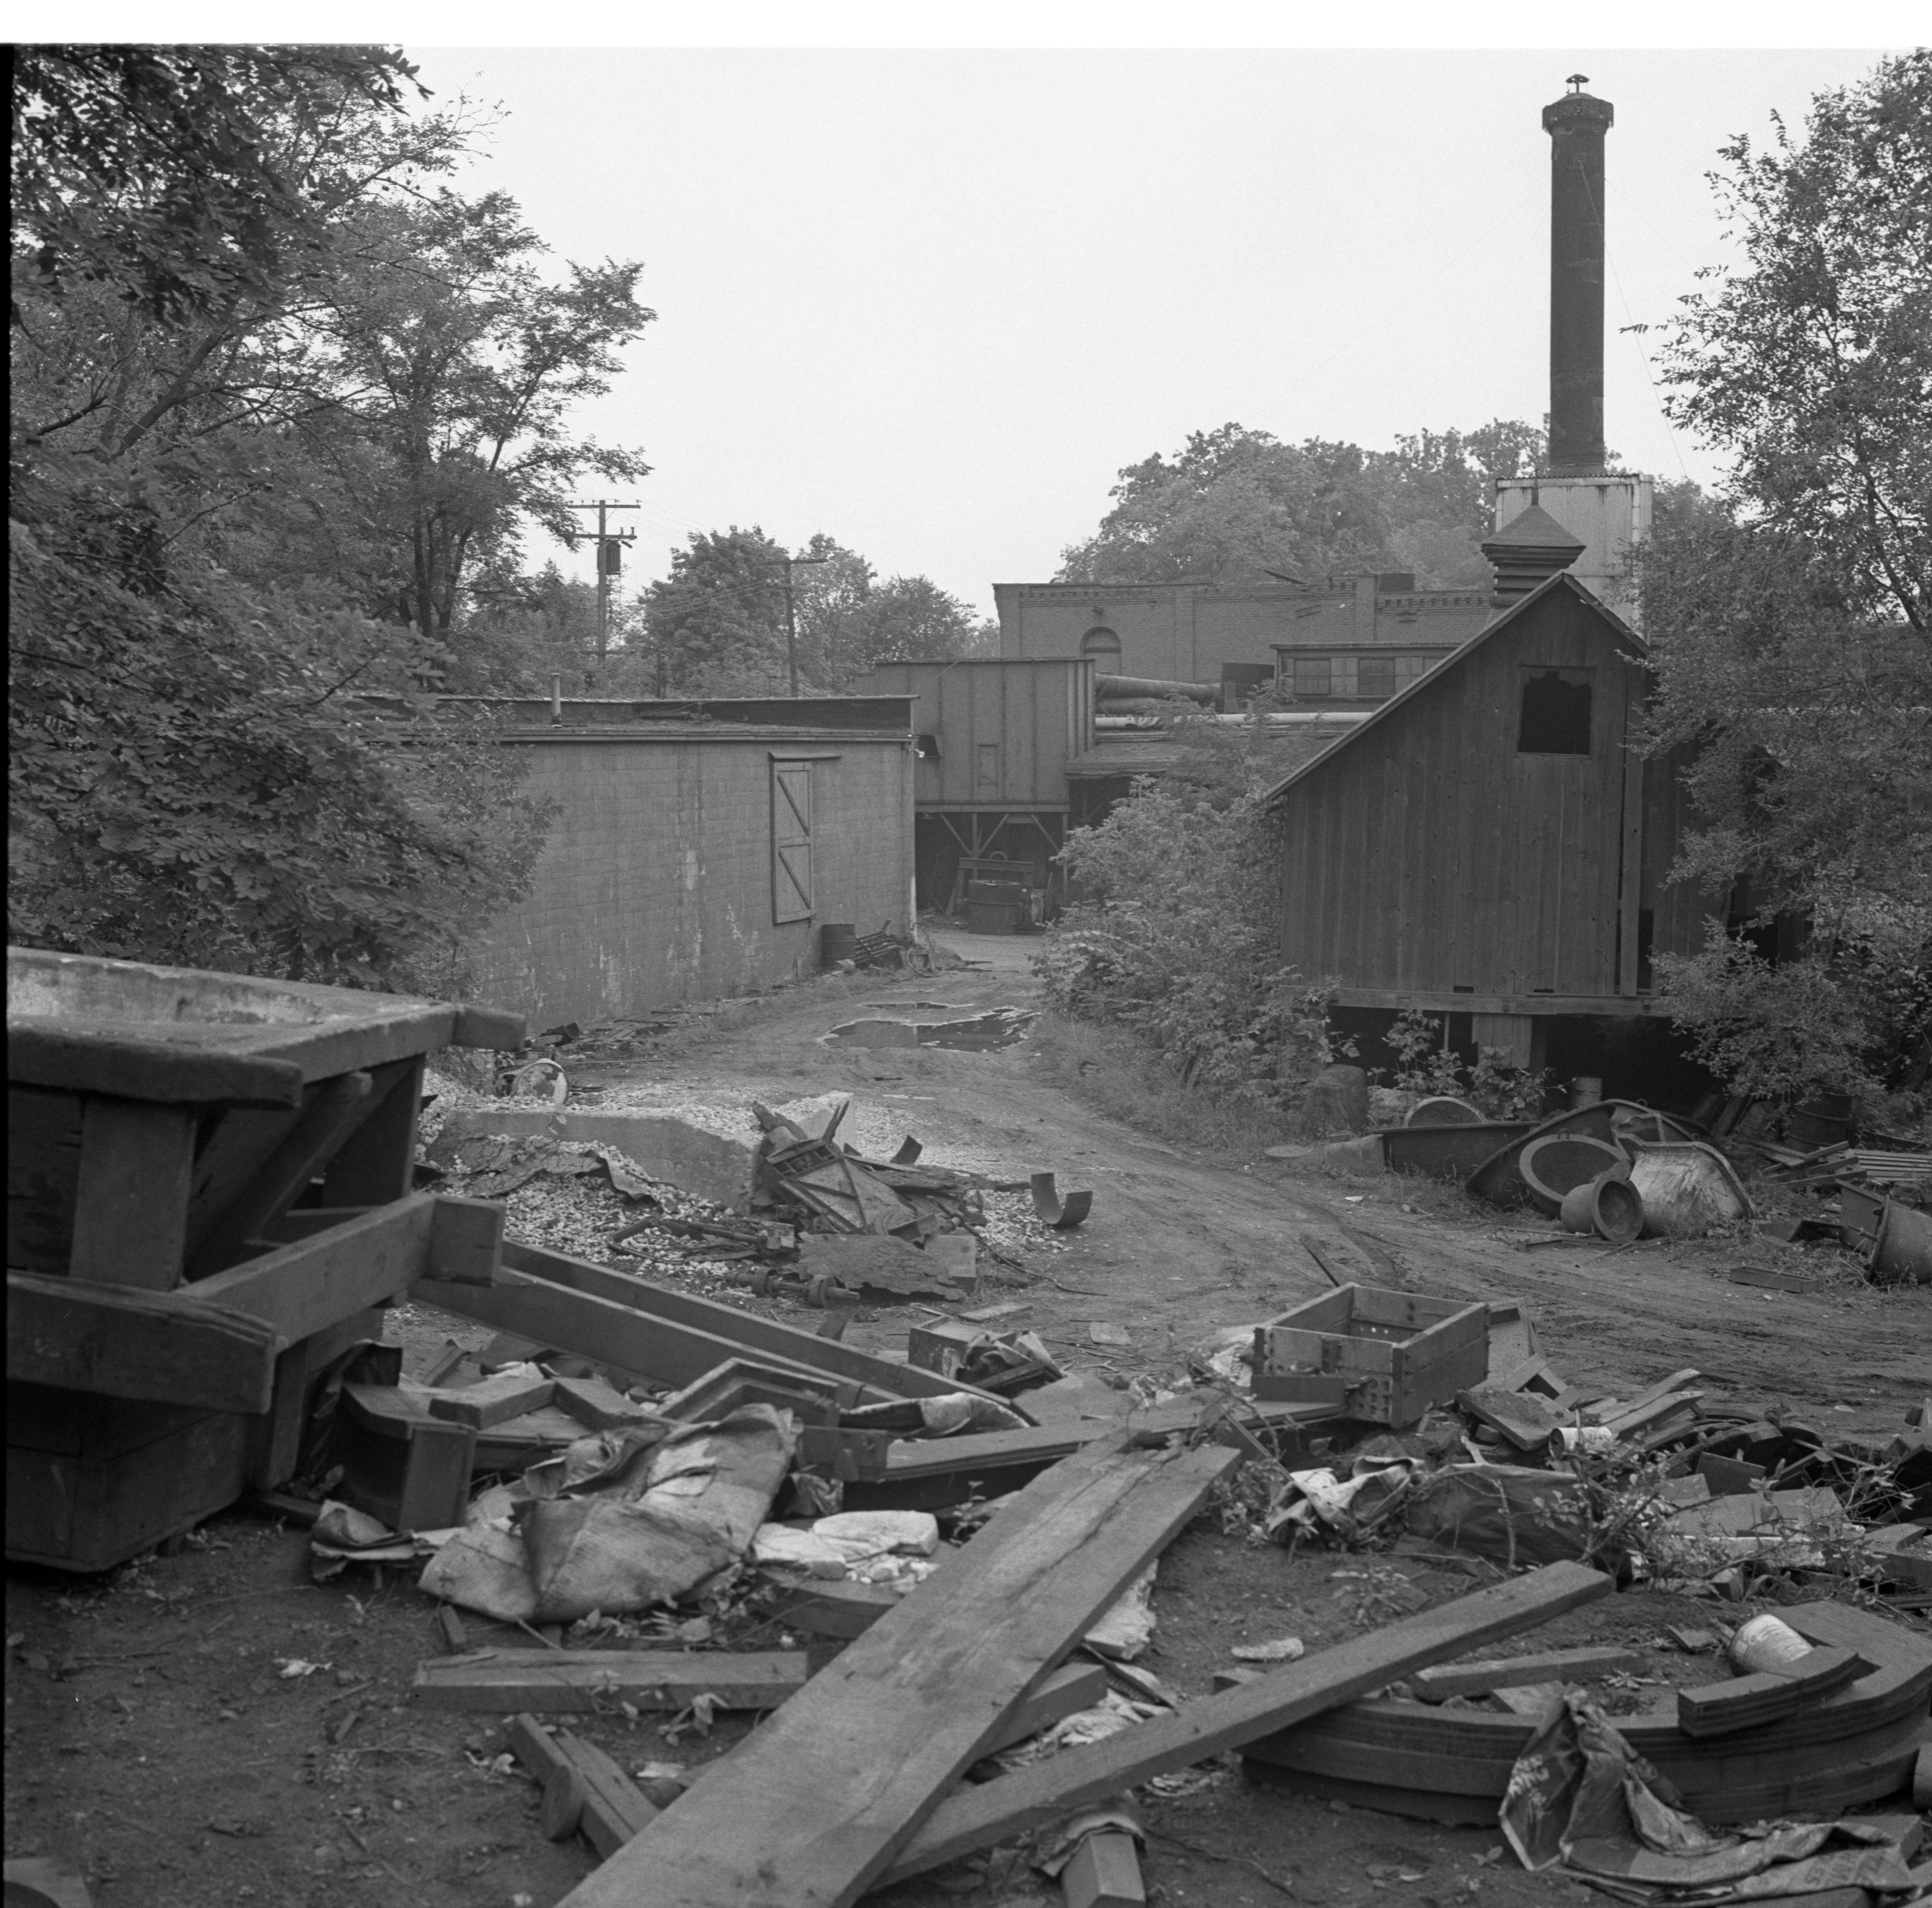 The Ann Arbor Foundry, October 15, 1972 image